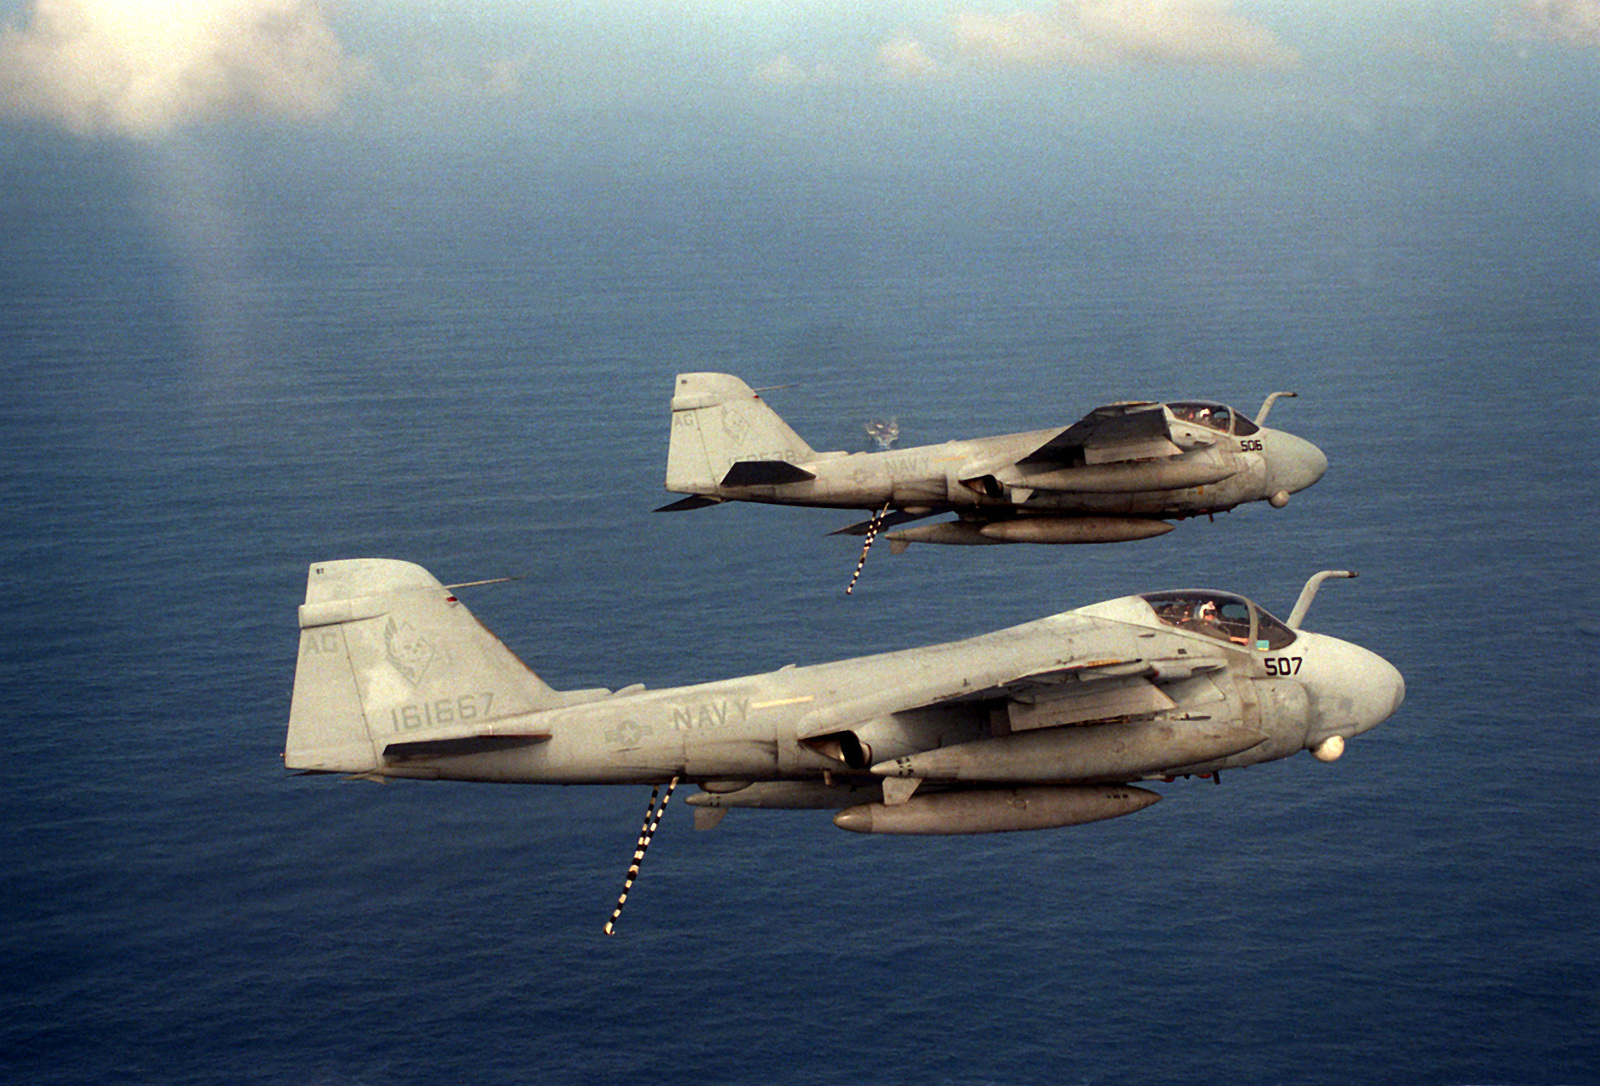 An air-to-air right side view of two A-6E Intruder aircraft flying in formation